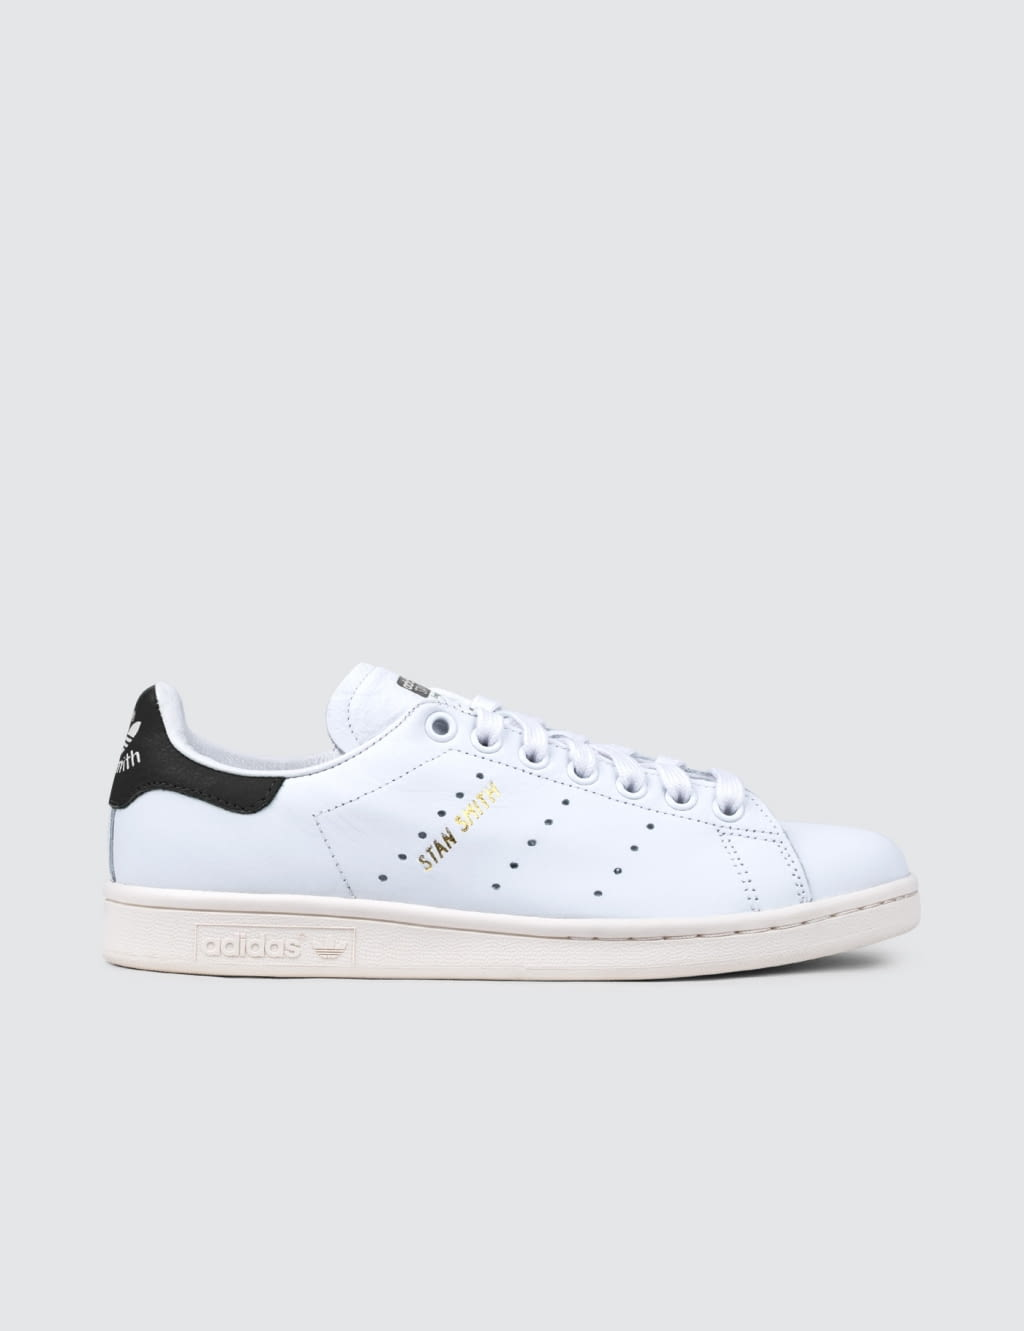 kaufen original adidas originals stan smith in indonesien bobobobo